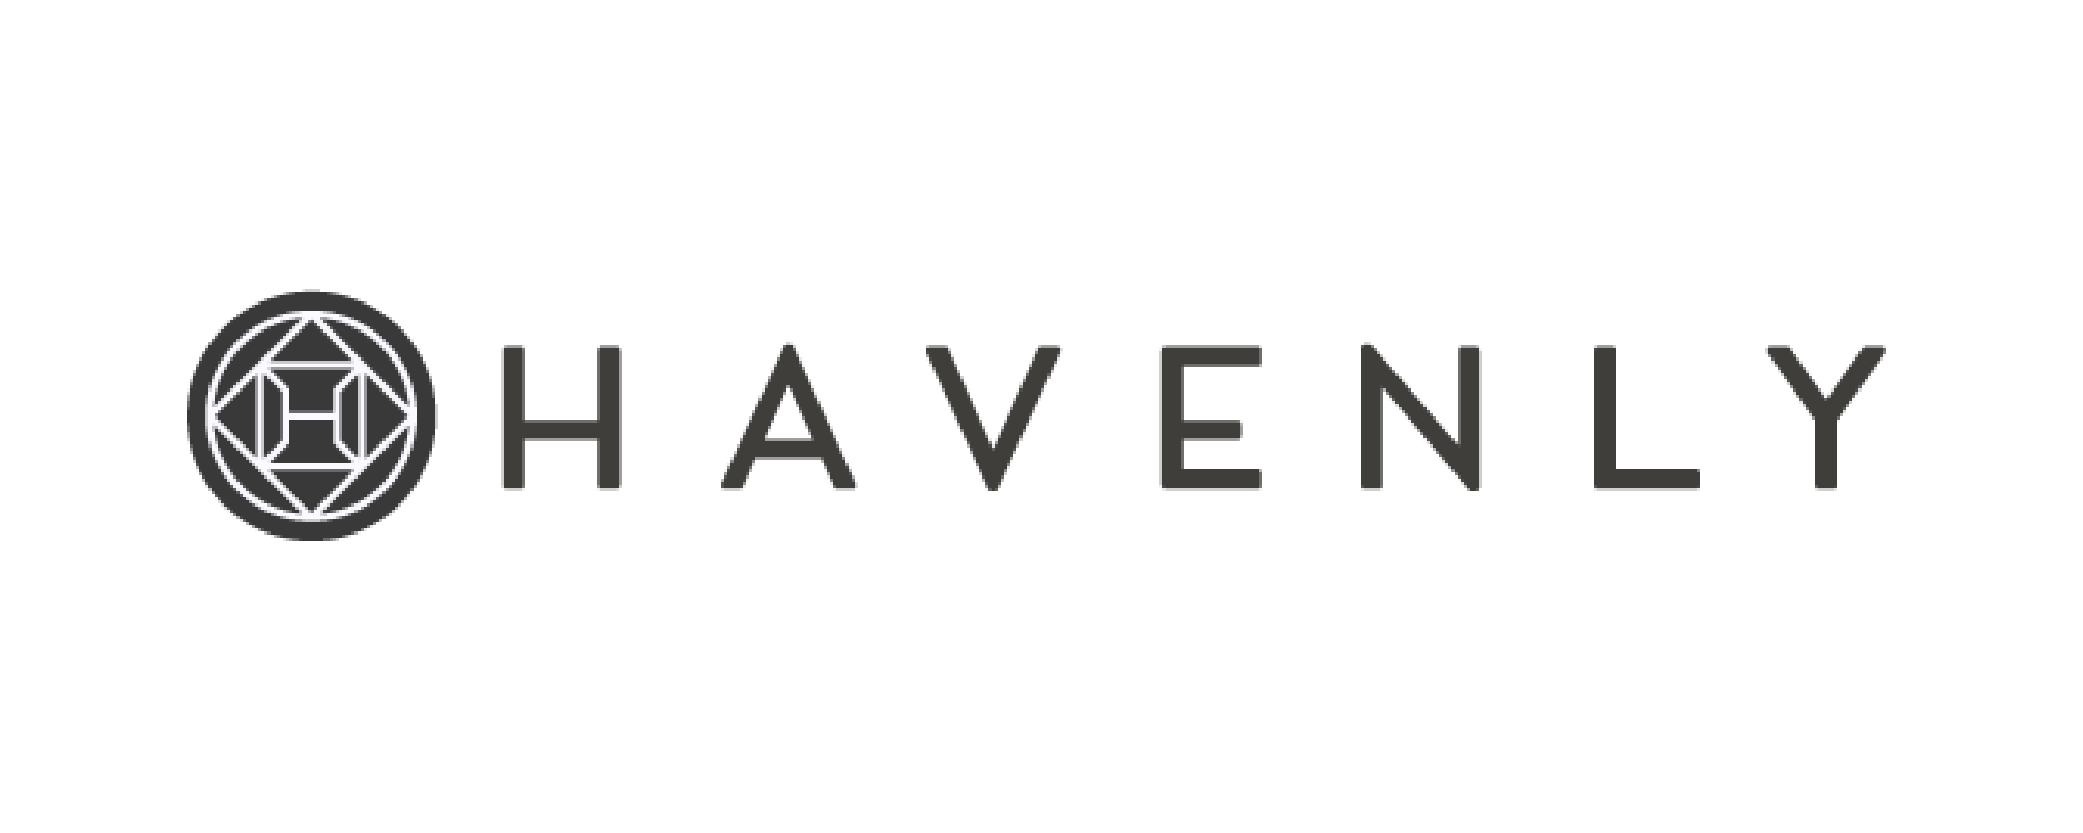 Havenly_Logo-01.jpg